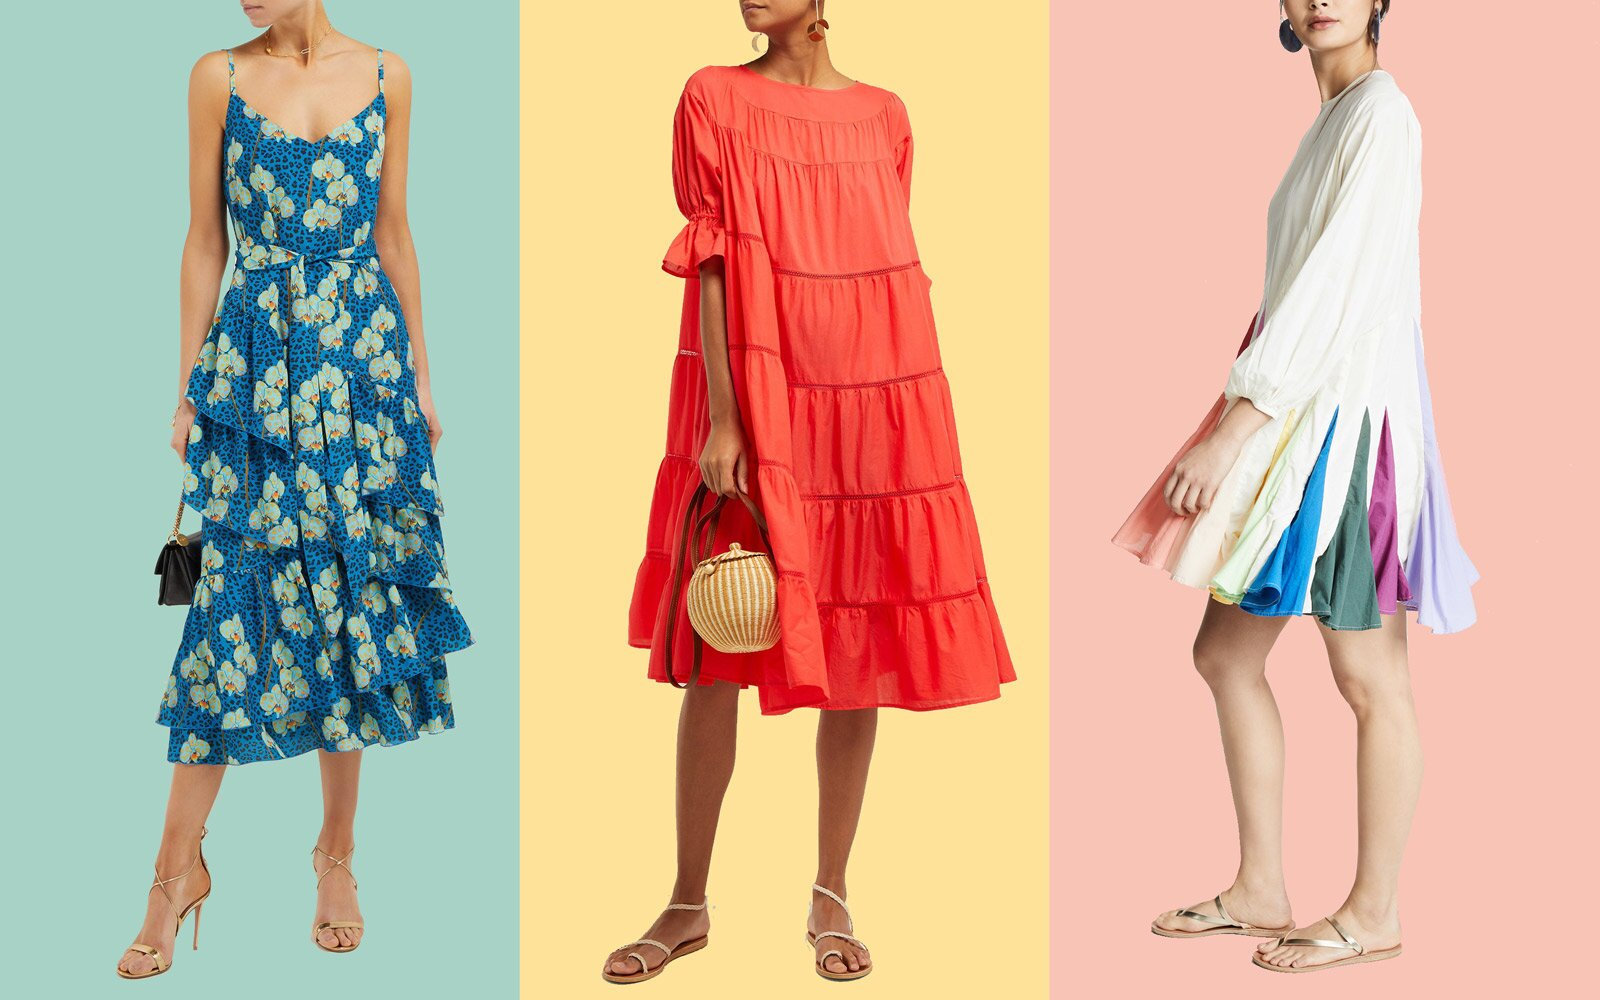 f8a279fc Where to Find the Prettiest Flowy Spring Dresses | Travel + Leisure